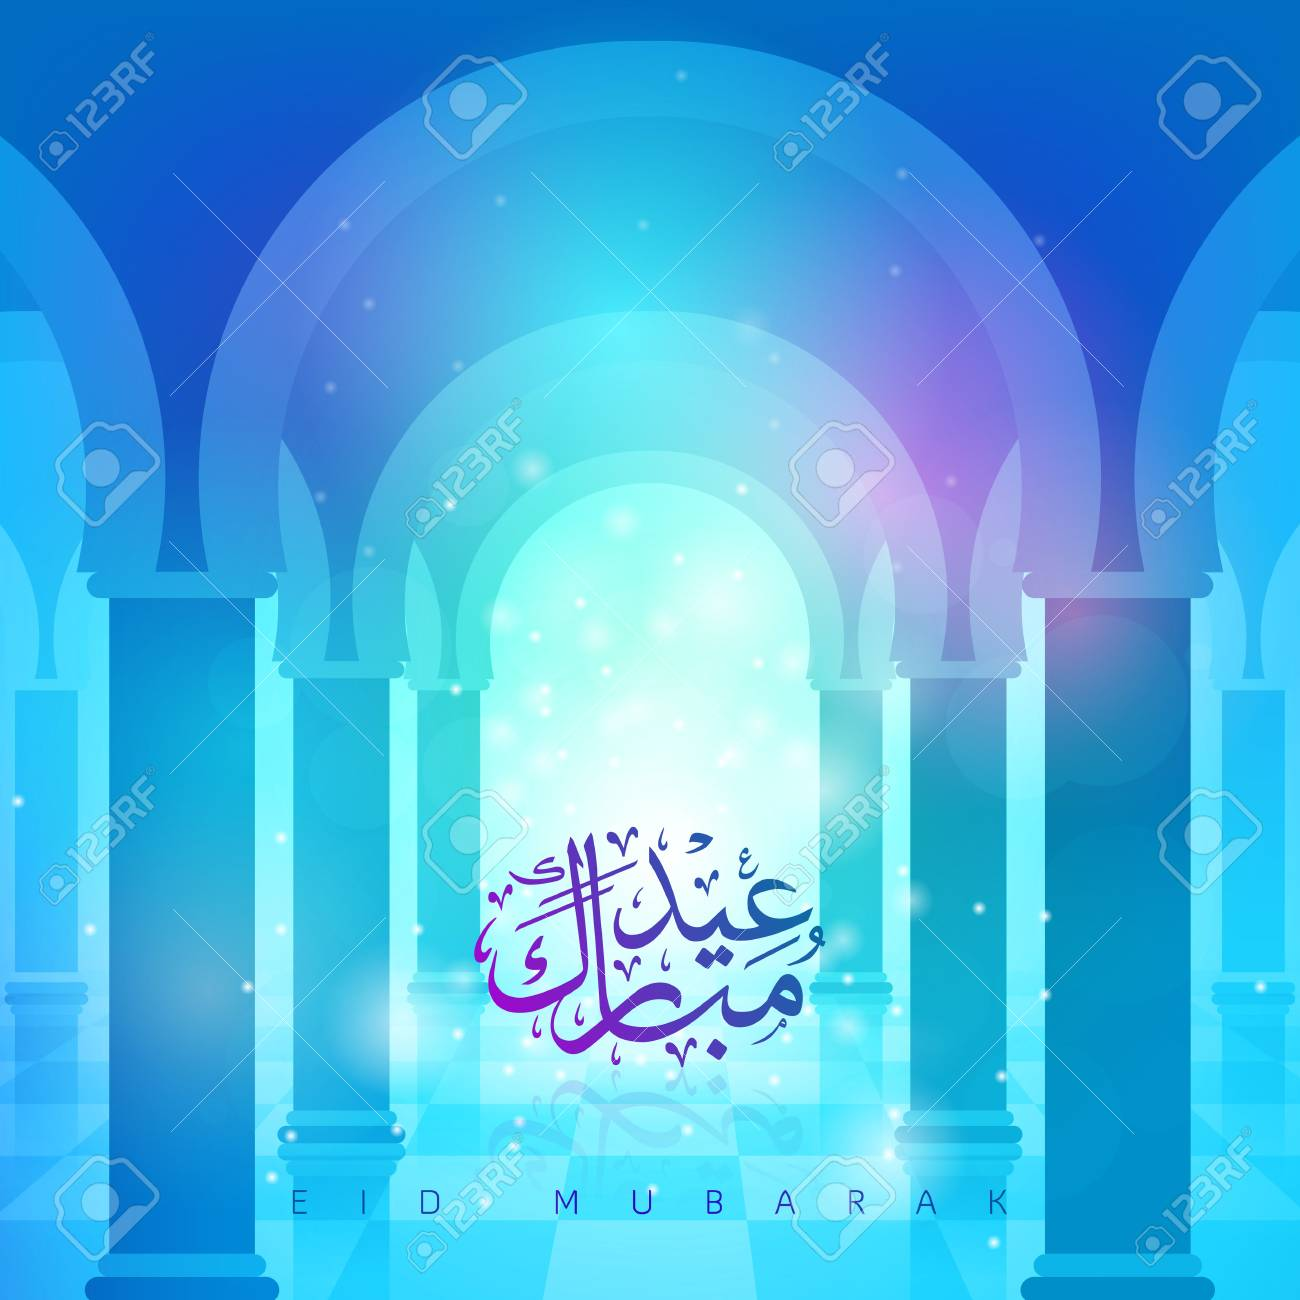 Eid mubarak arabic calligraphy mosque doors for greeting card eid mubarak arabic calligraphy mosque doors for greeting card stock vector 56754366 m4hsunfo